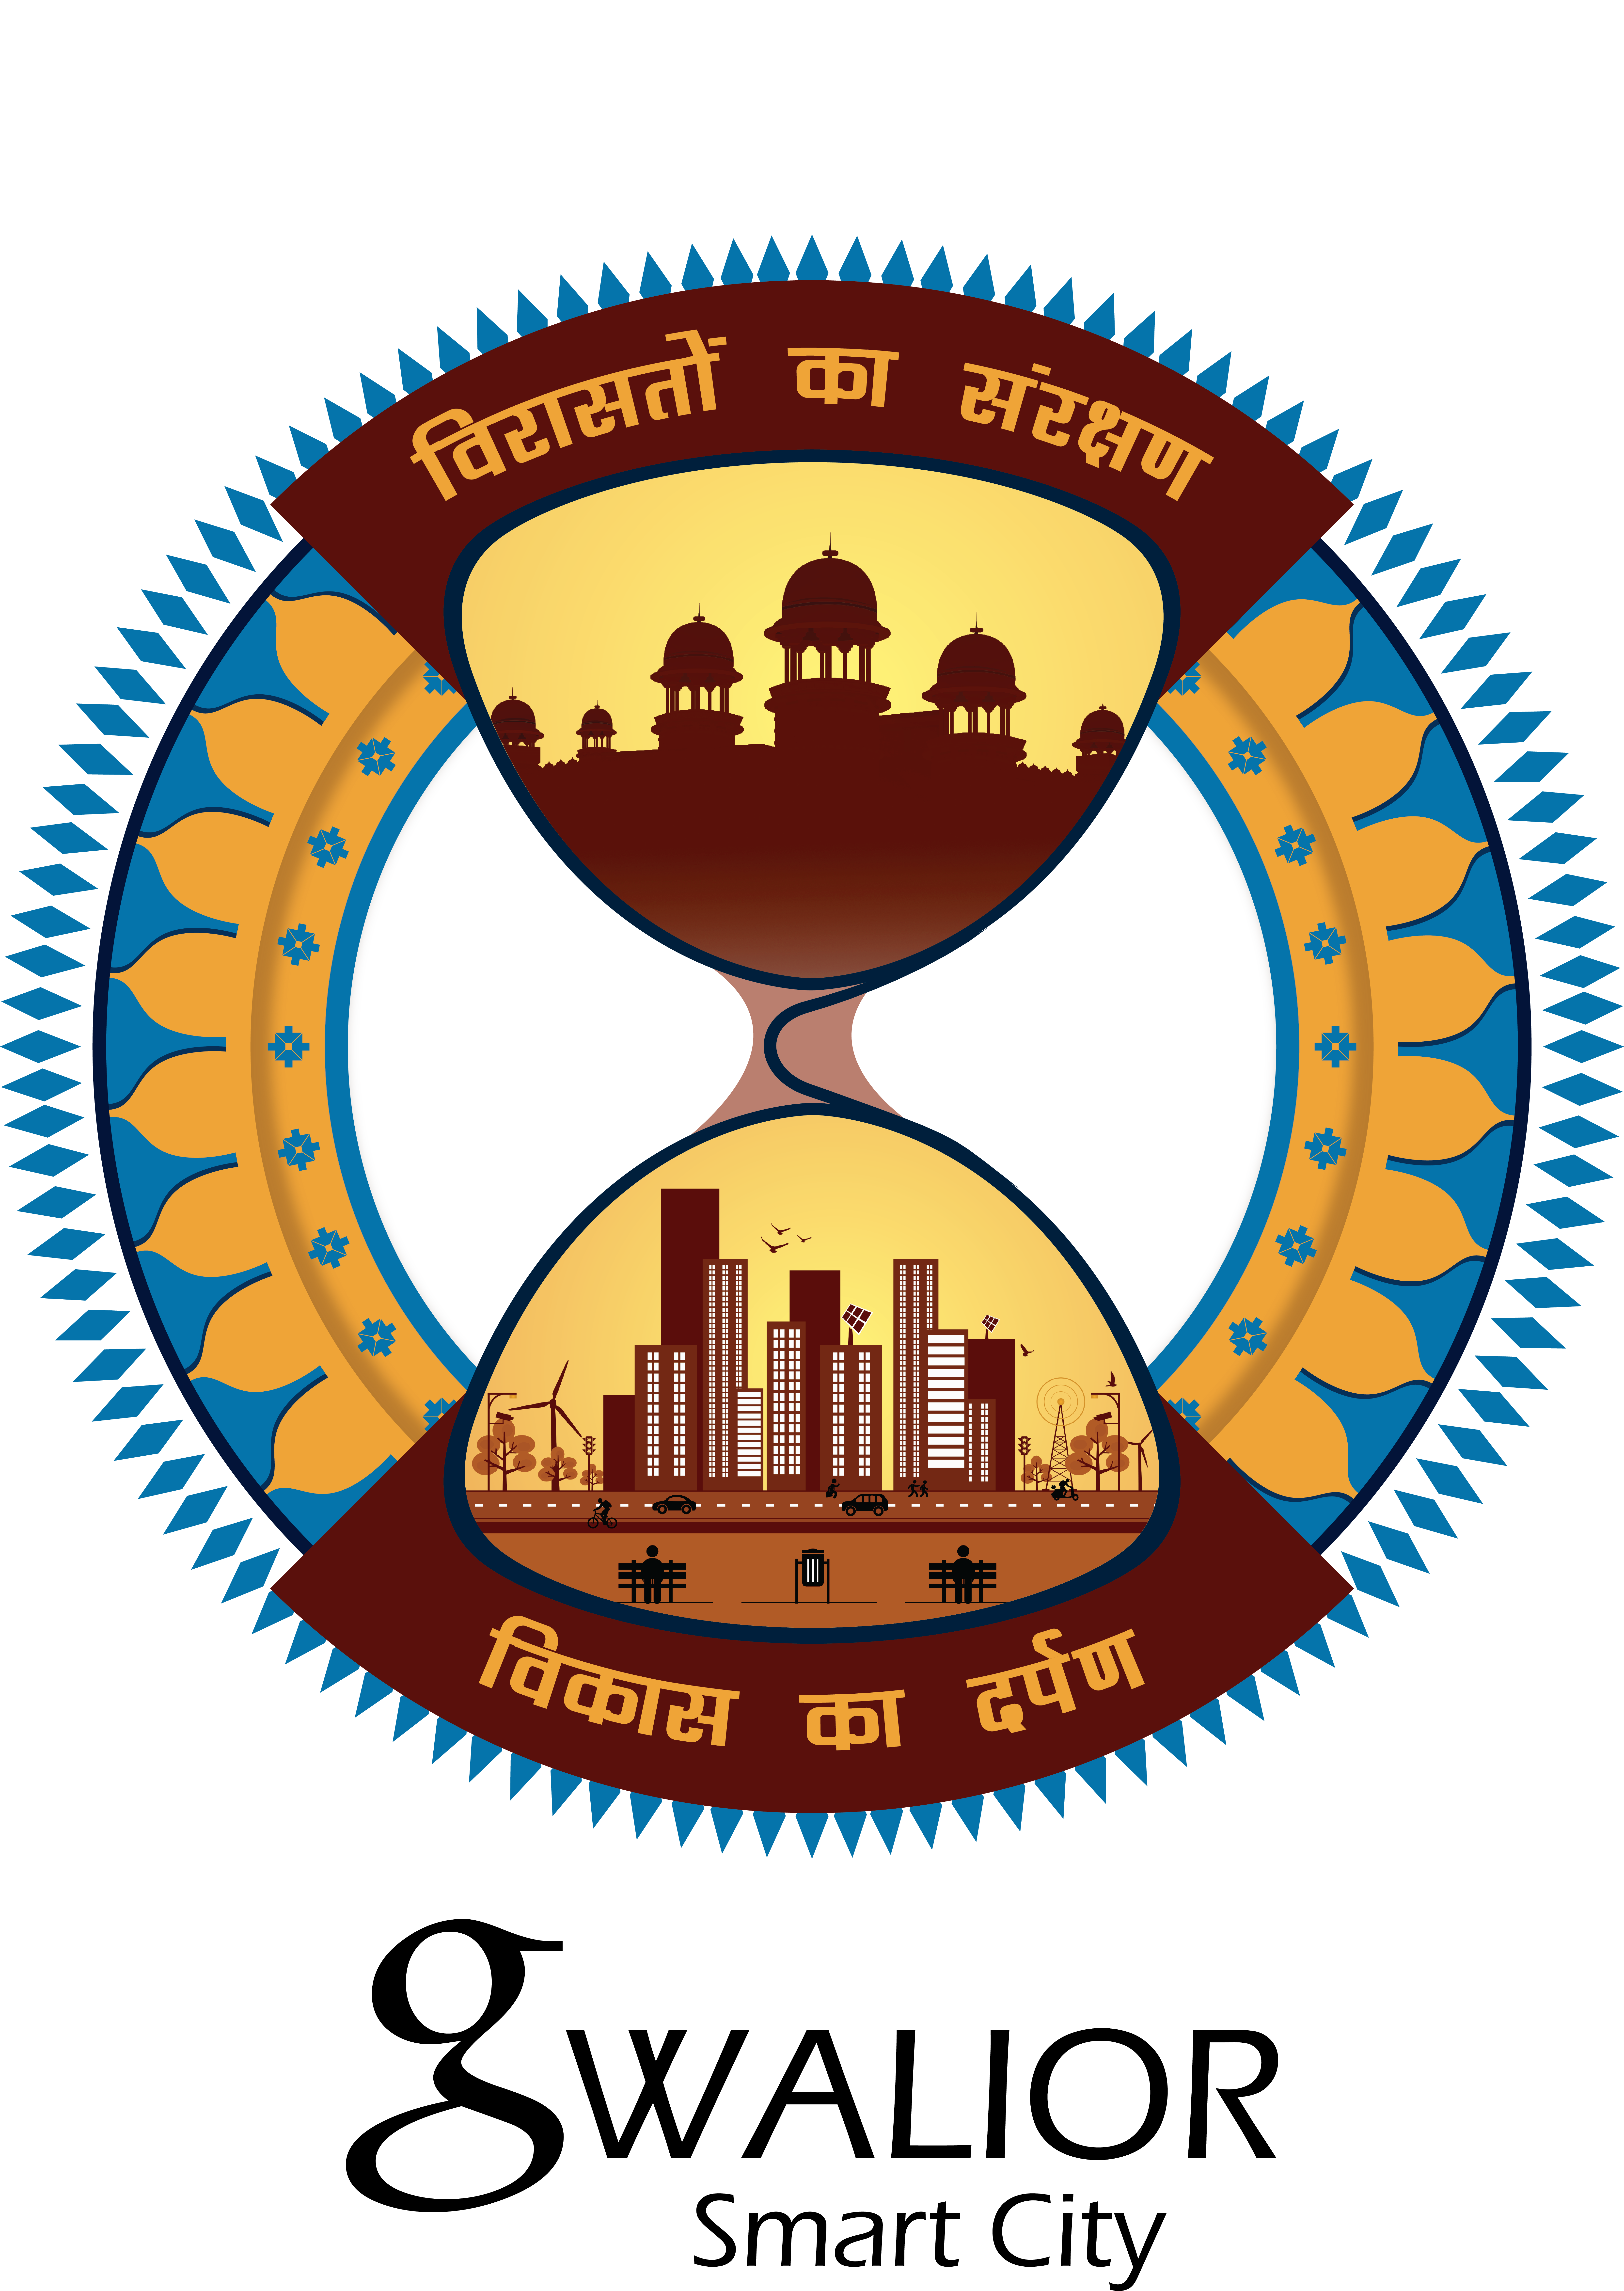 Banner of Gwalior: Improving city maintenance services using data